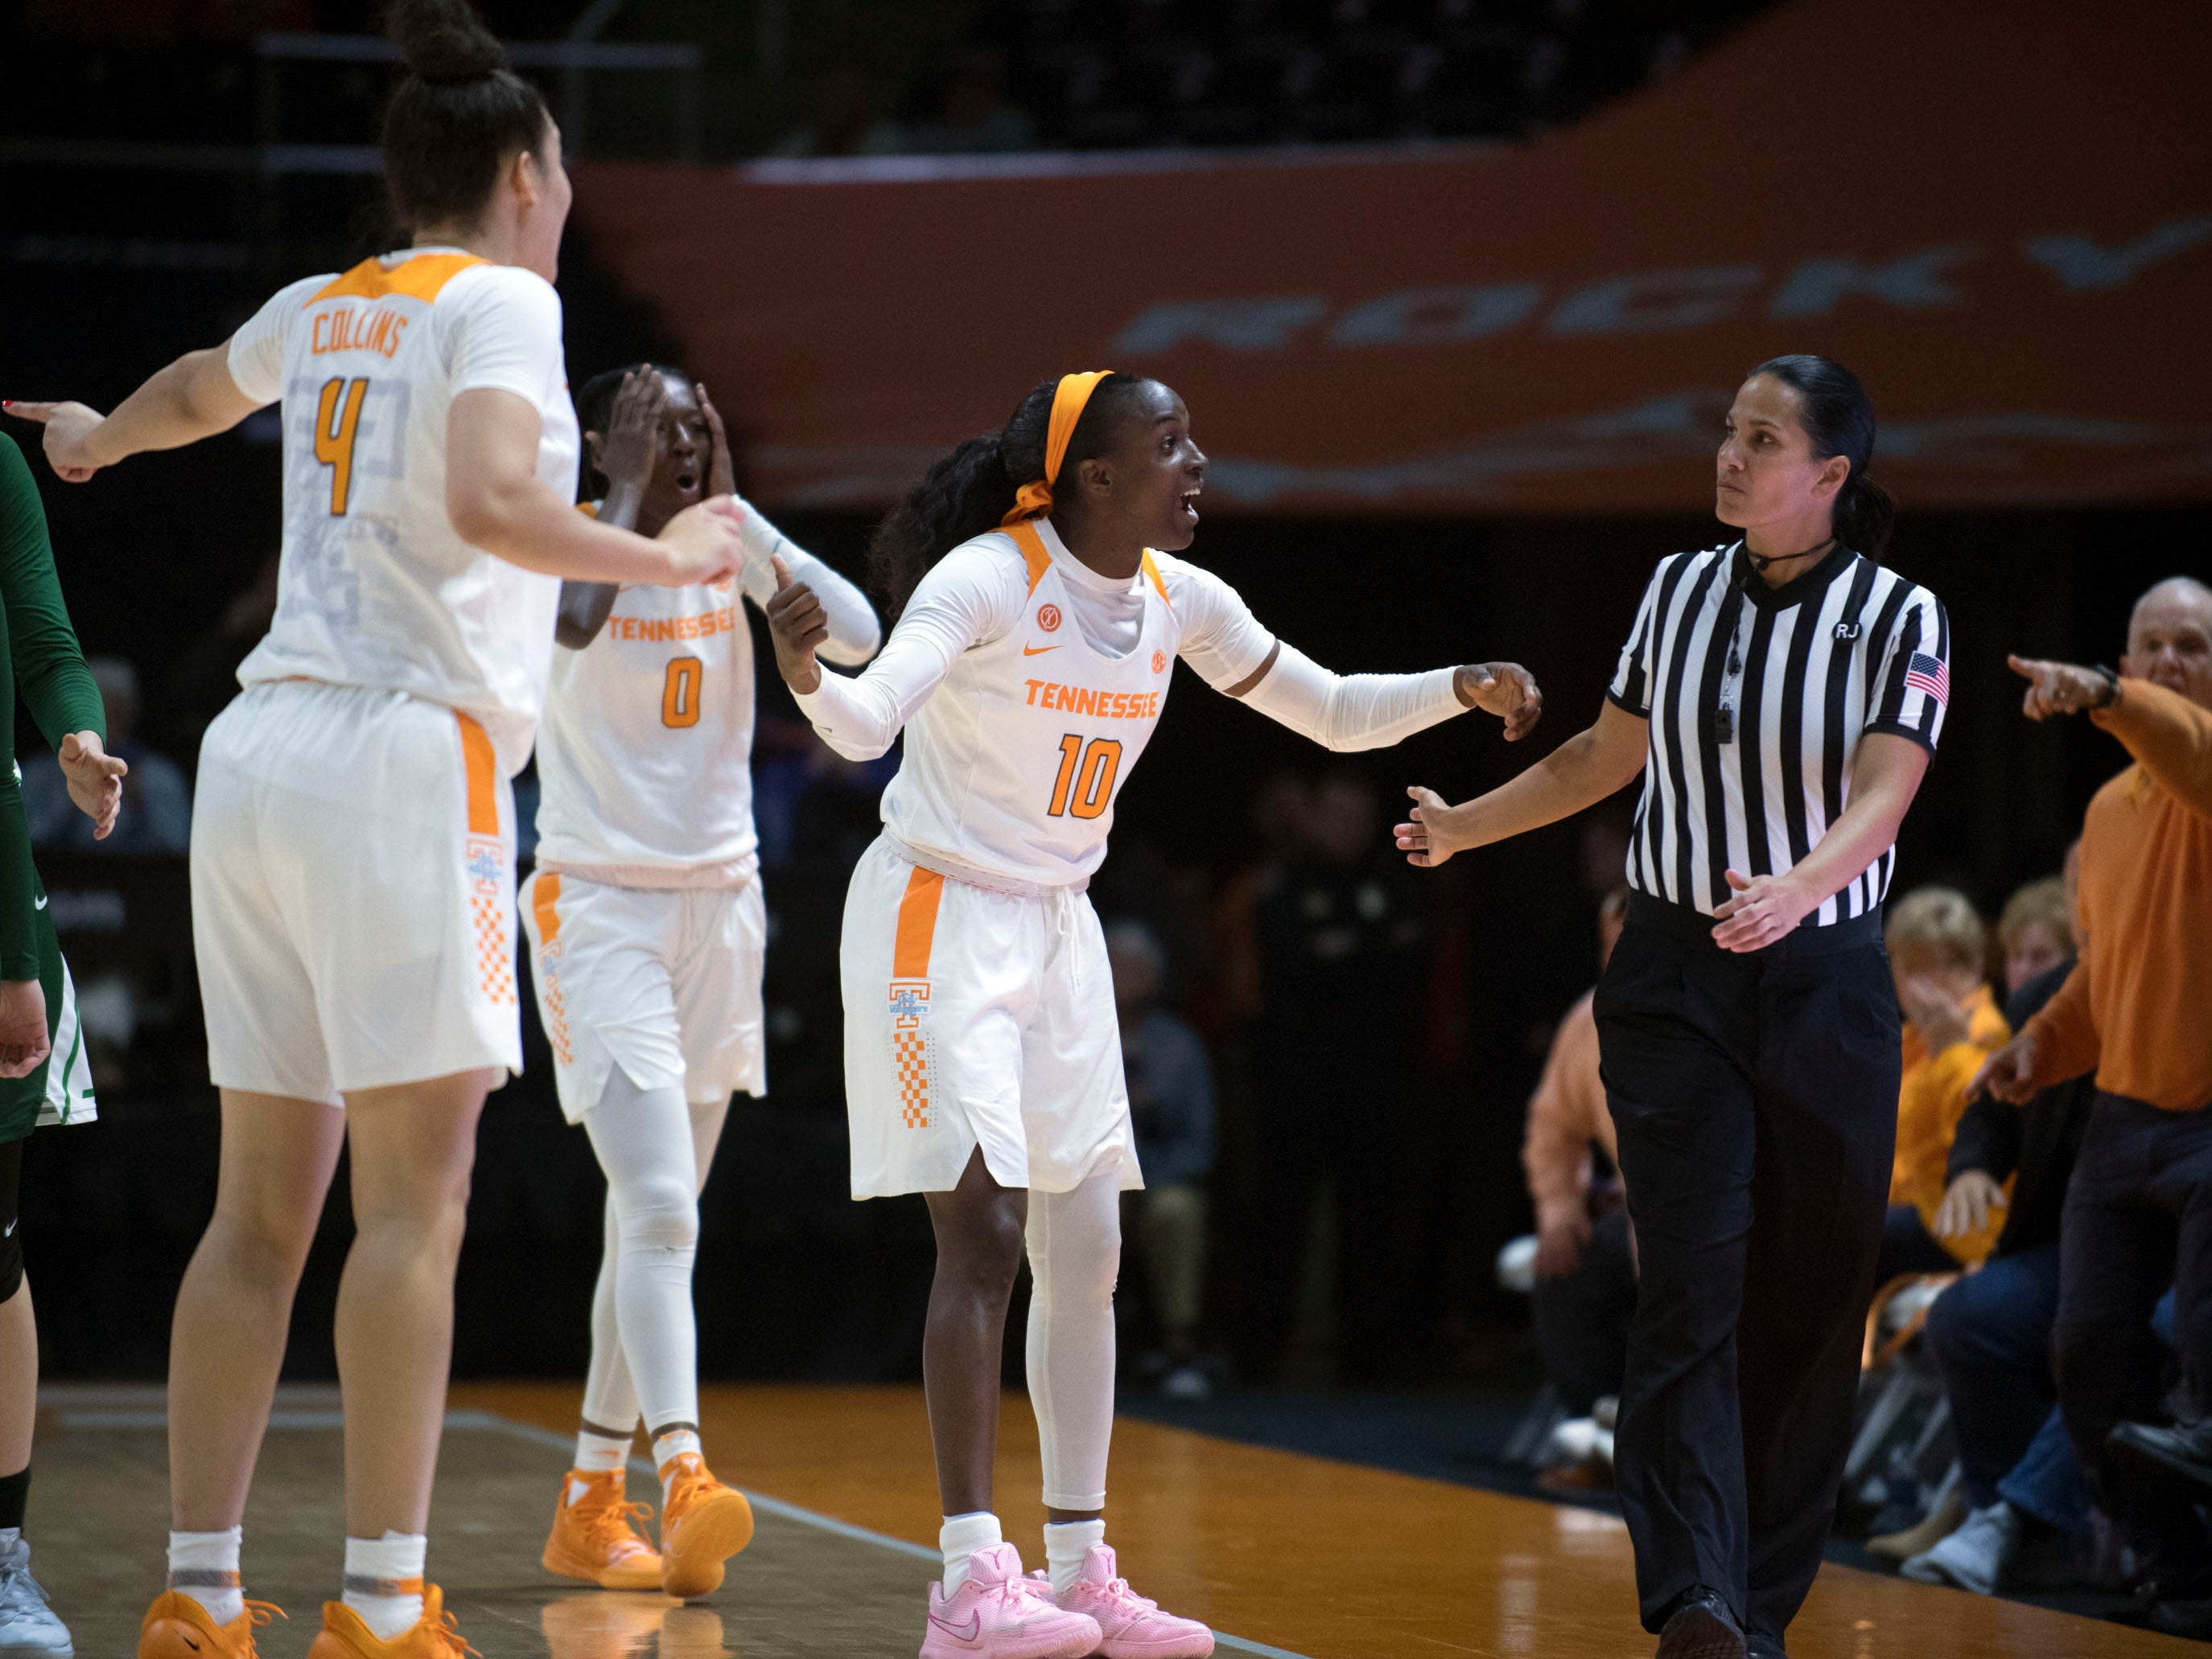 Tennessee's Meme Jackson (10) argues that the ball went out bounds on a Stetson player during their game at Thompson-Boling Arena on Wednesday, December 5, 2018. The official ruled in favor of Tennessee.